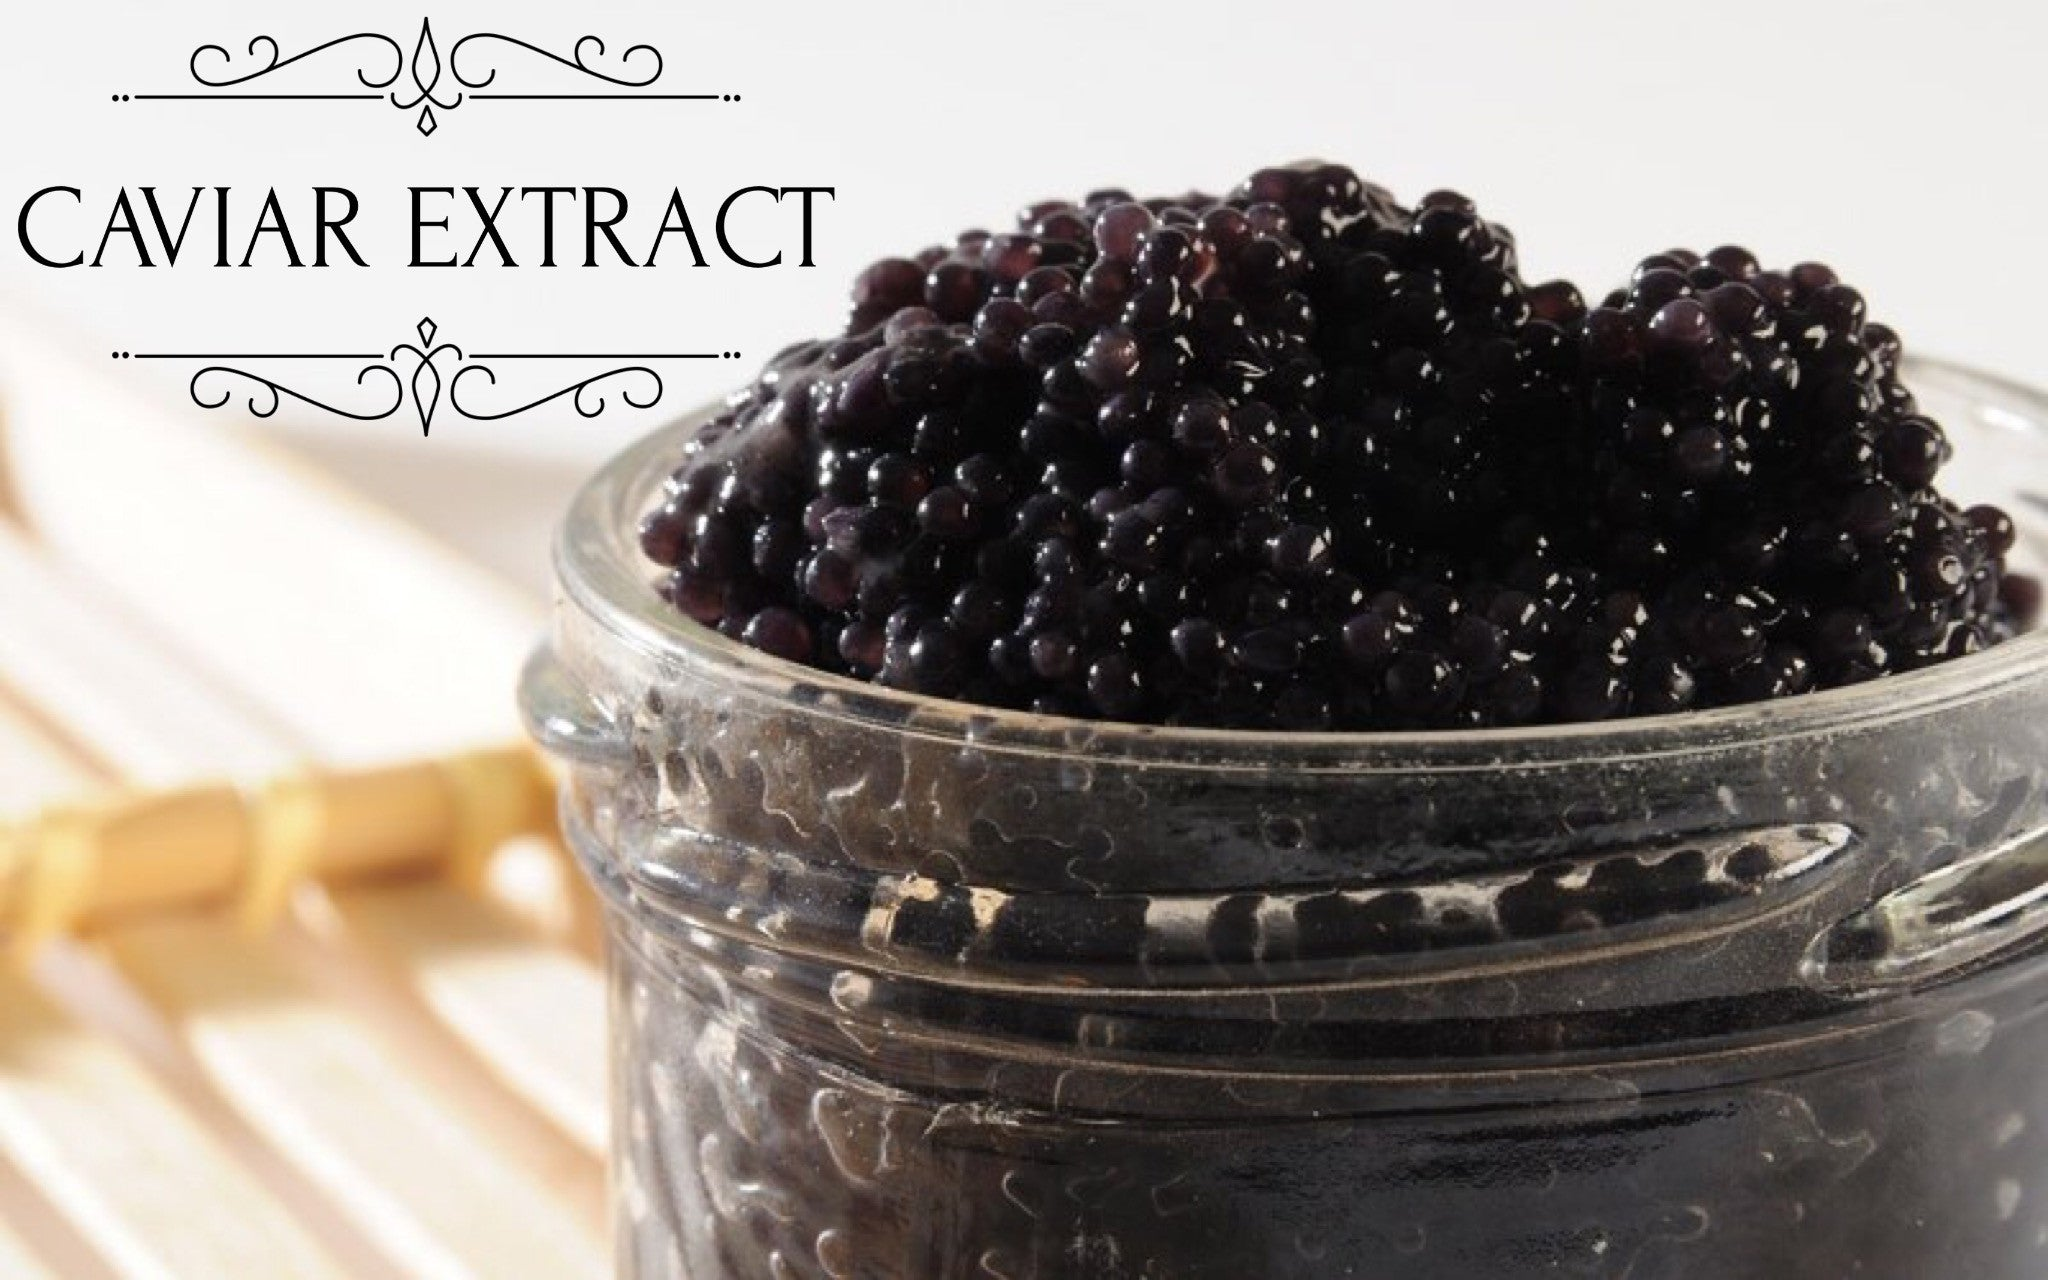 What is Caviar Extract?